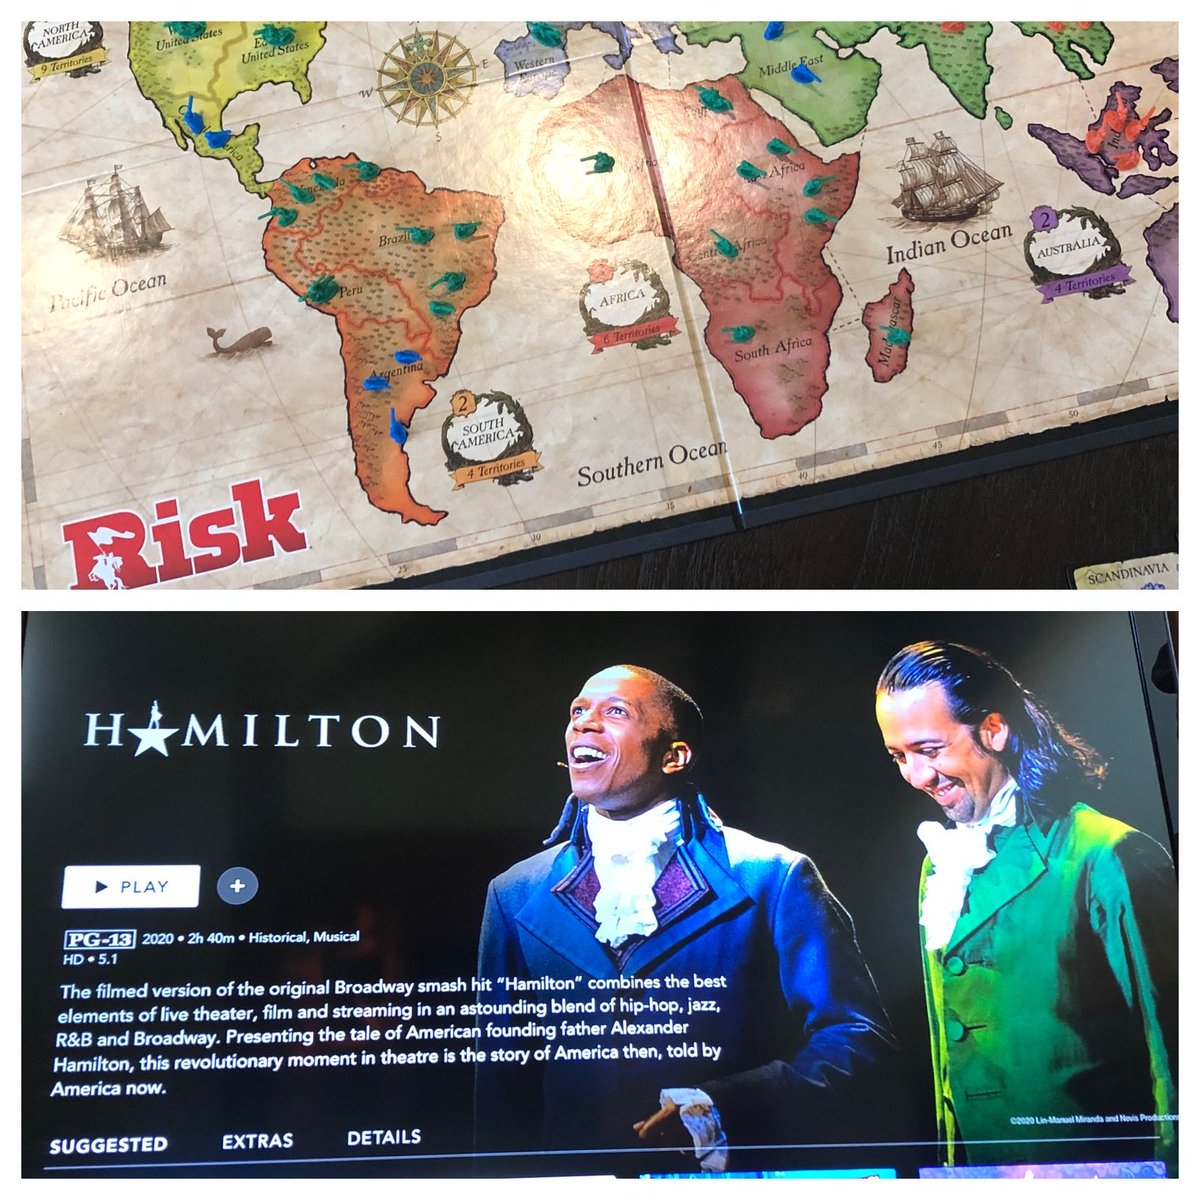 Our parenting is so tight today... #risk #hamifilm https://t.co/3ebudPxqAr